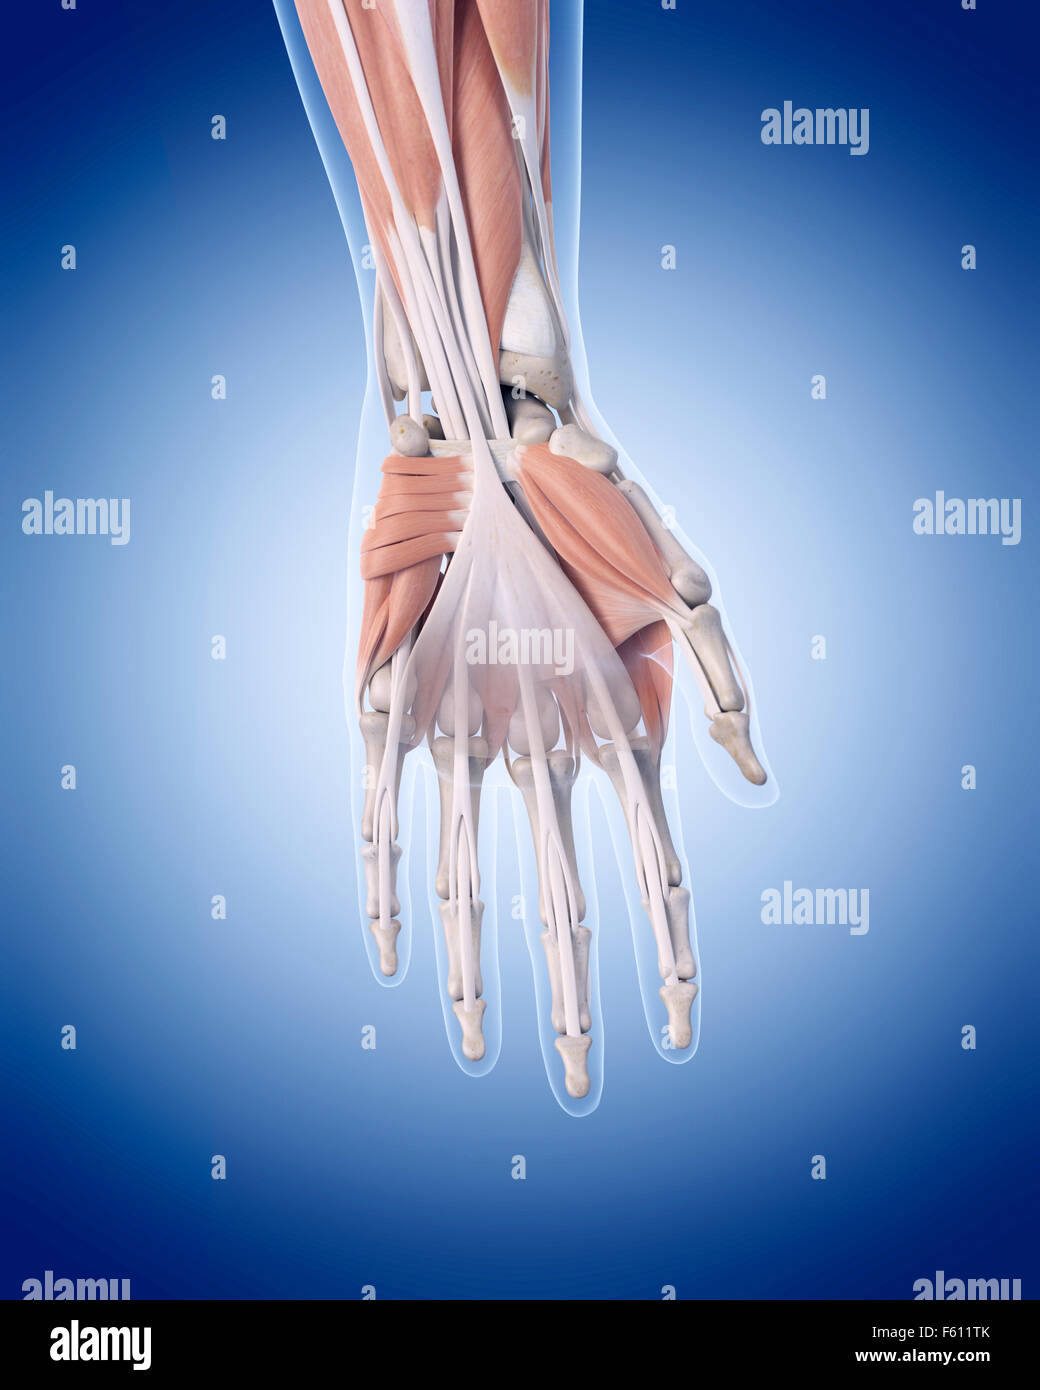 Hand Anatomy Artwork Tendon Stock Photos Hand Anatomy Artwork